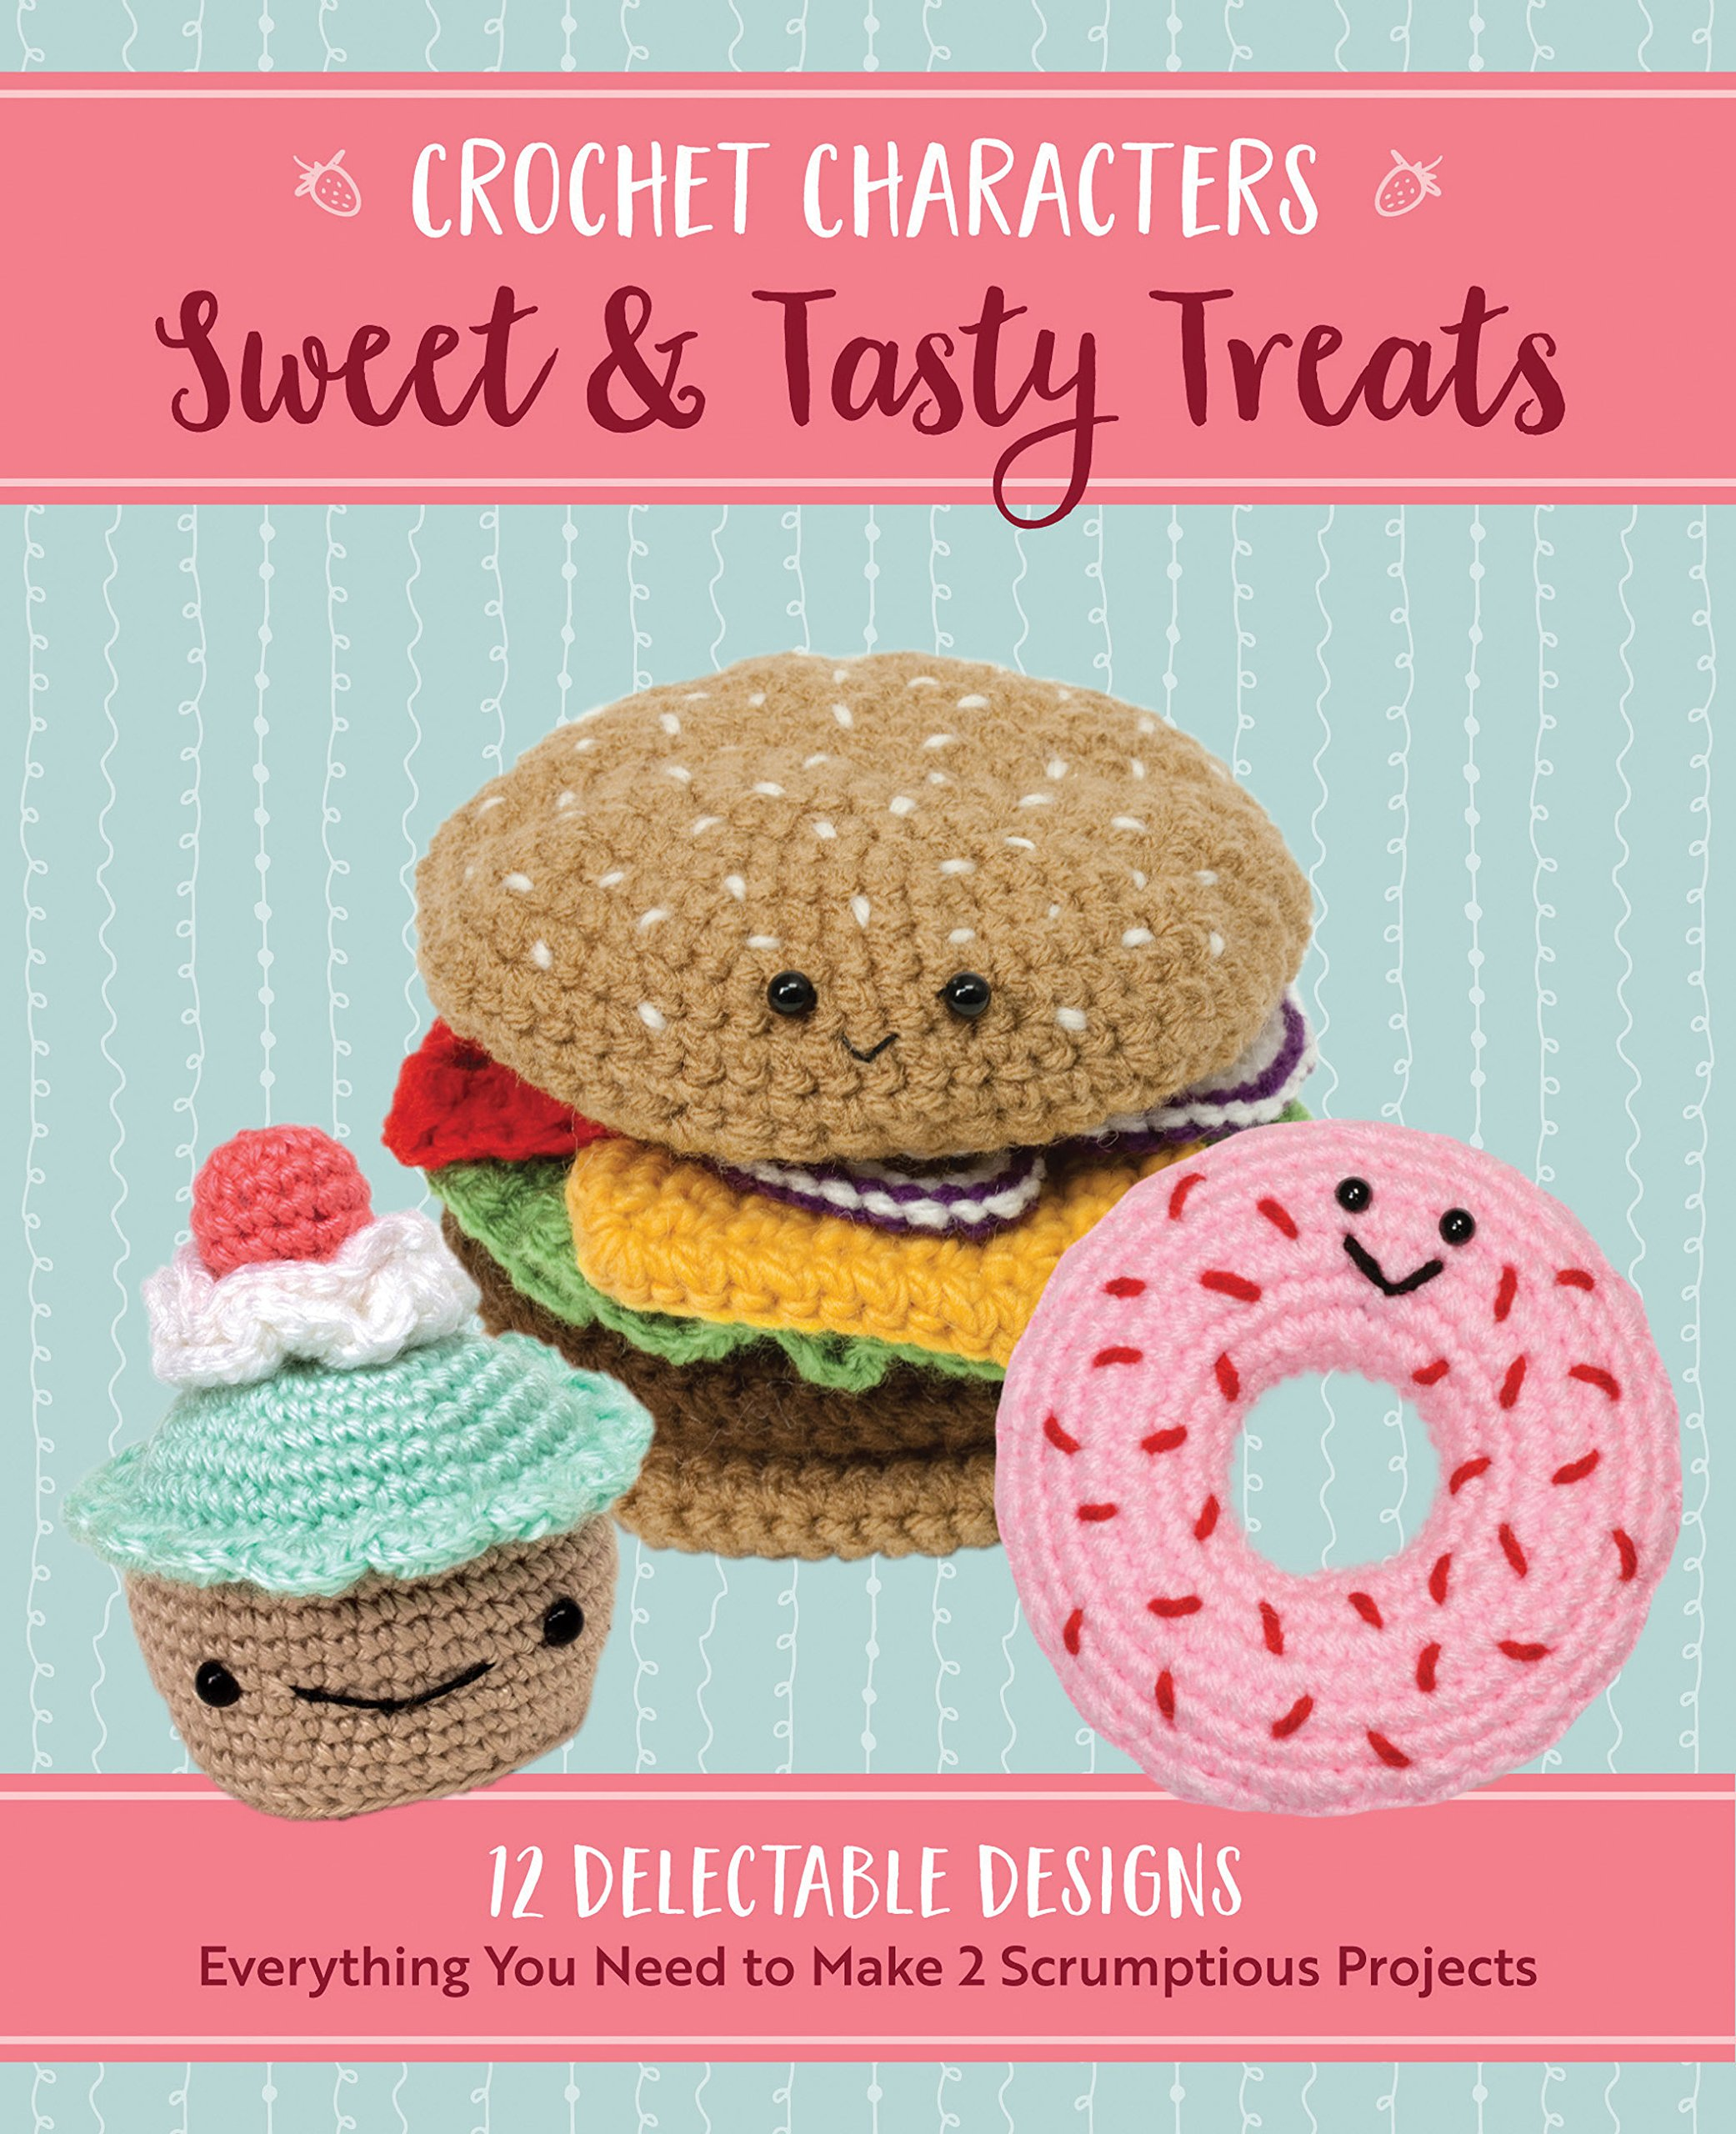 Sweet & Tasty Treats: 12 Delectable Designs (Crochet Characters) Paperback  – September 5, 2017